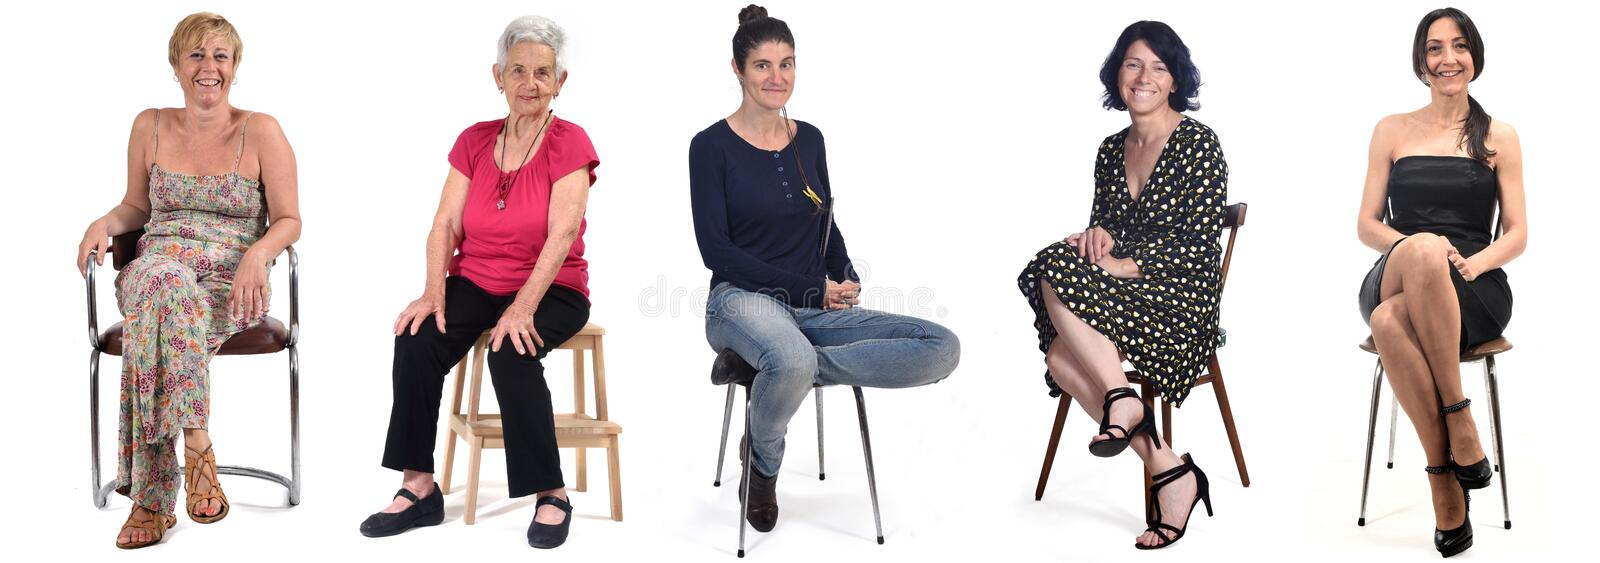 Group of women sitting on chair on white background royalty free stock images